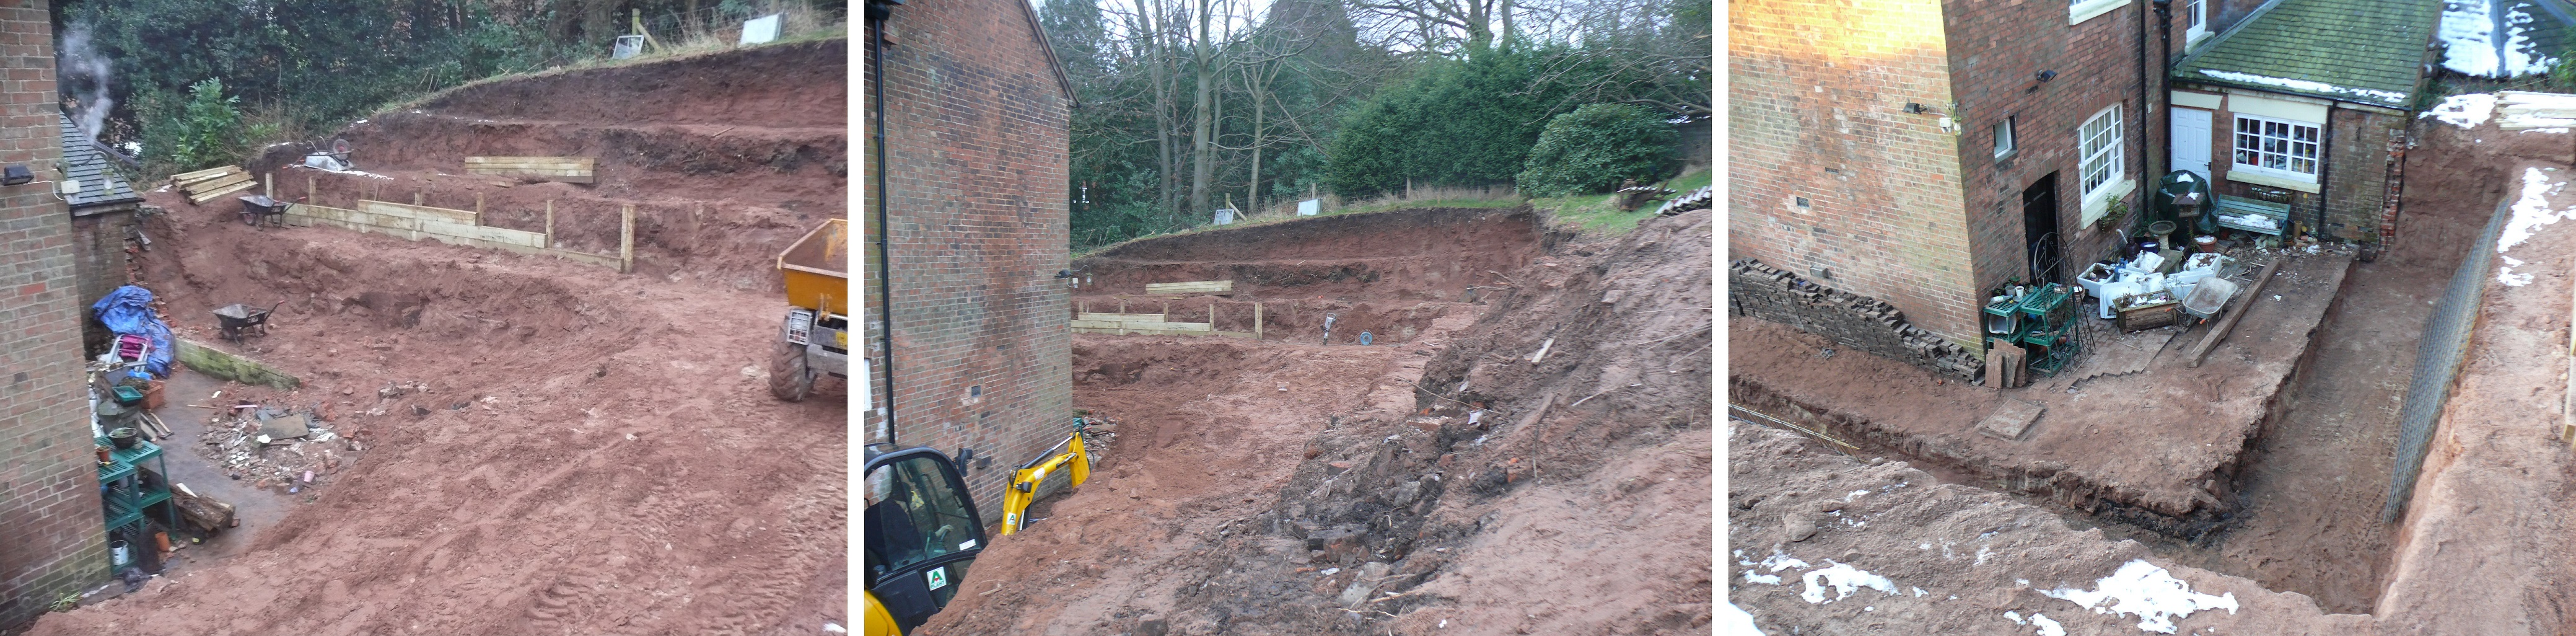 Digging out and Levelling - Landscaping in Cheadle, Staffordshire